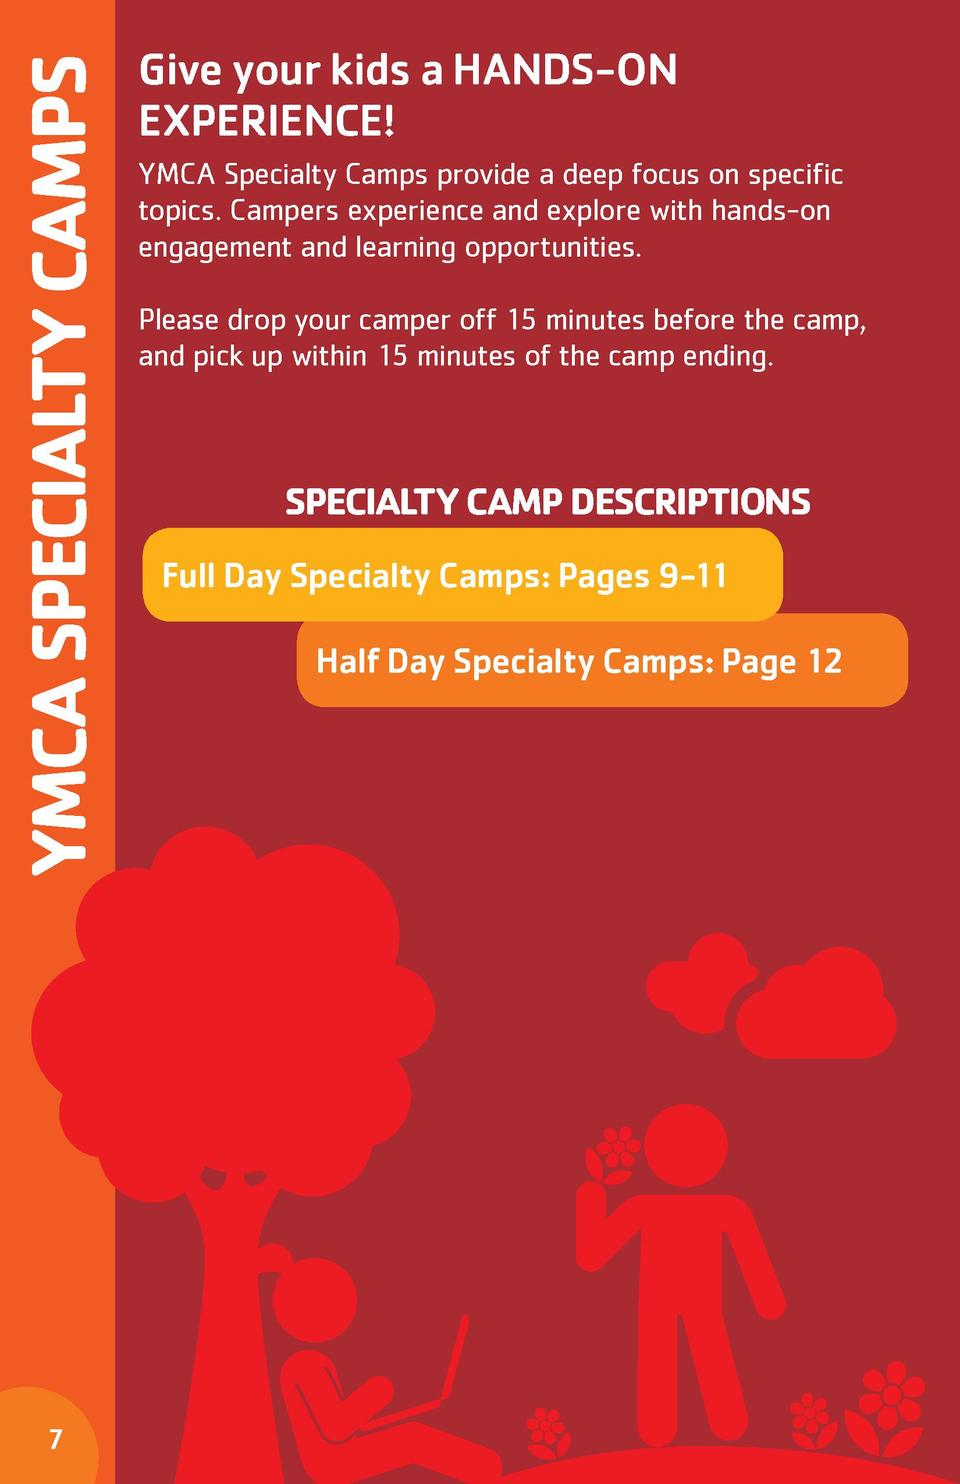 YMCA SPECIALTY CAMPS 7  Give your kids a HANDS-ON EXPERIENCE  YMCA Specialty Camps provide a deep focus on specific topics...